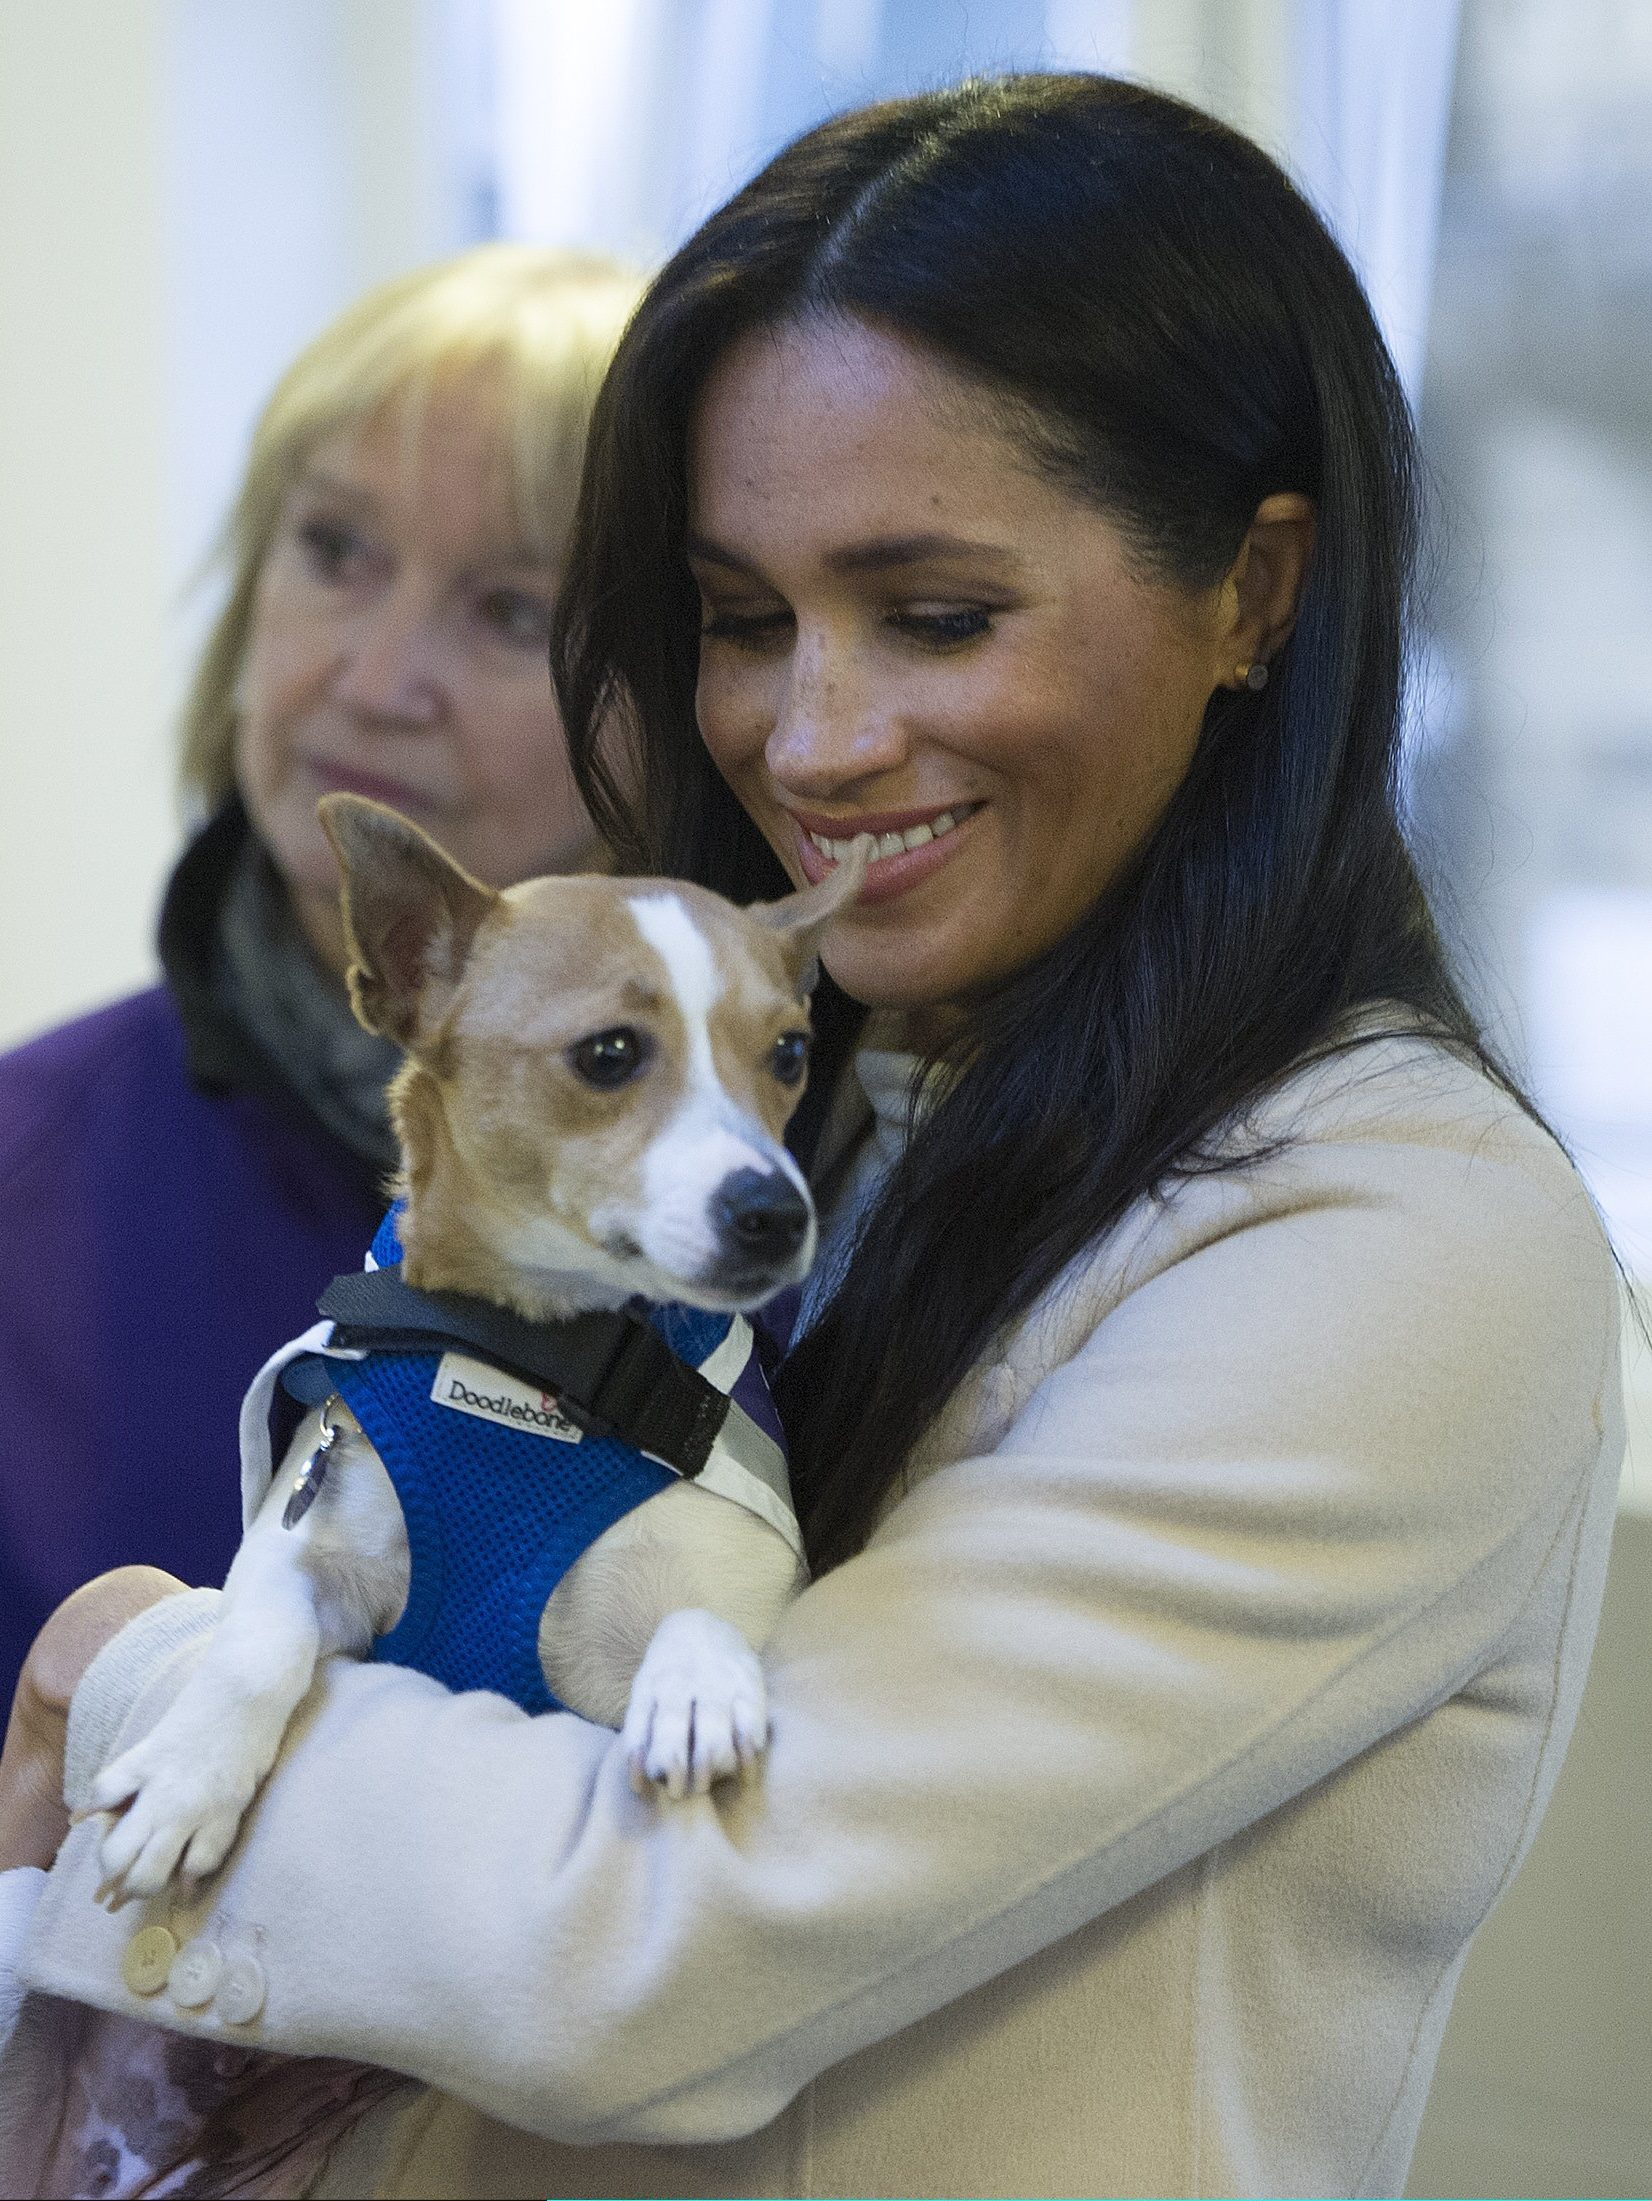 """LONDON, ENGLAND - JANUARY 16: Meghan, the Duchess of Sussex meets a Jack Russell called """"Minnie"""" during her visit to the Mayhew, an animal welfare charity on January 16, 2019 in London, England. This will be Her Royal Highnesses first official visit to Mayhew in her new role as Patron. (Photo by Eddie Mulholland - WPA Pool/Getty Images)"""